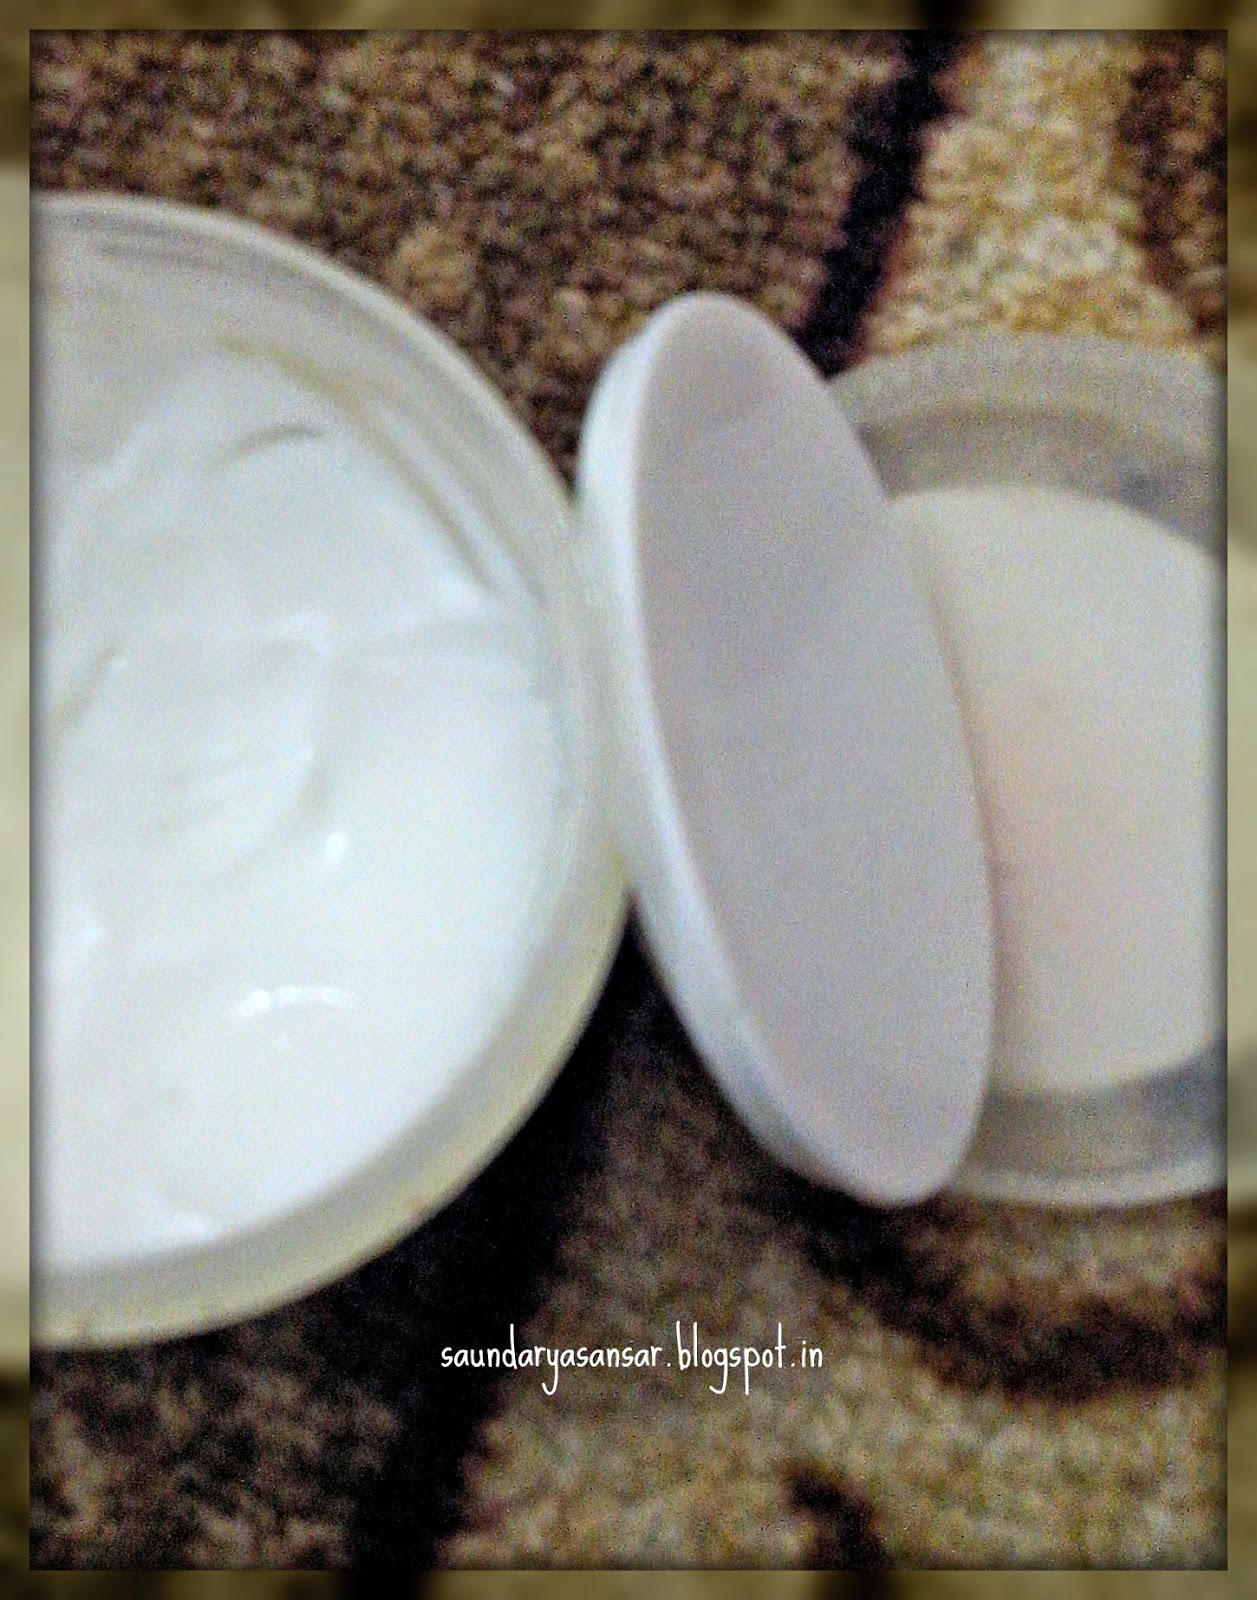 Vitamin e- De-pigmentation cream from Fabindia Review